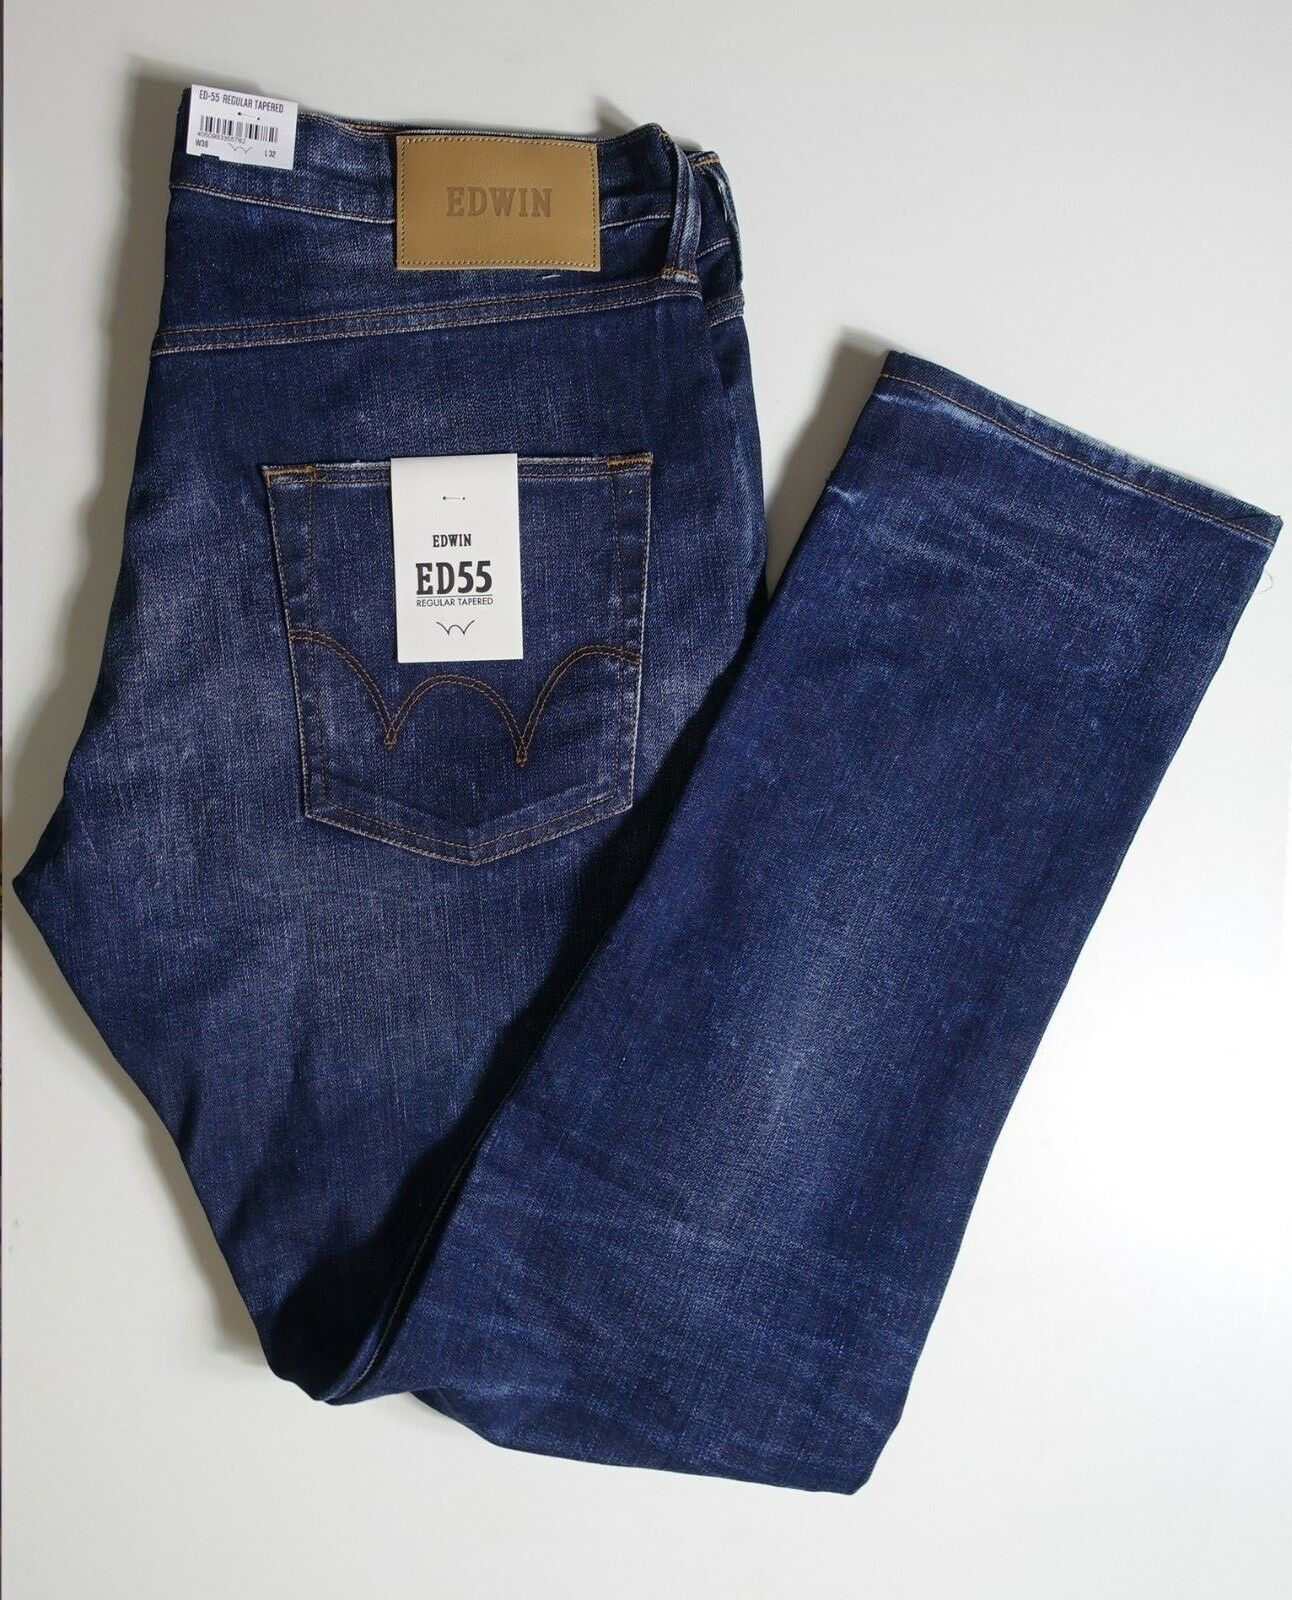 Jeans EDWIN neuf étiquette Japan ED-55 relaxed tapered blue W36 L32 valeur